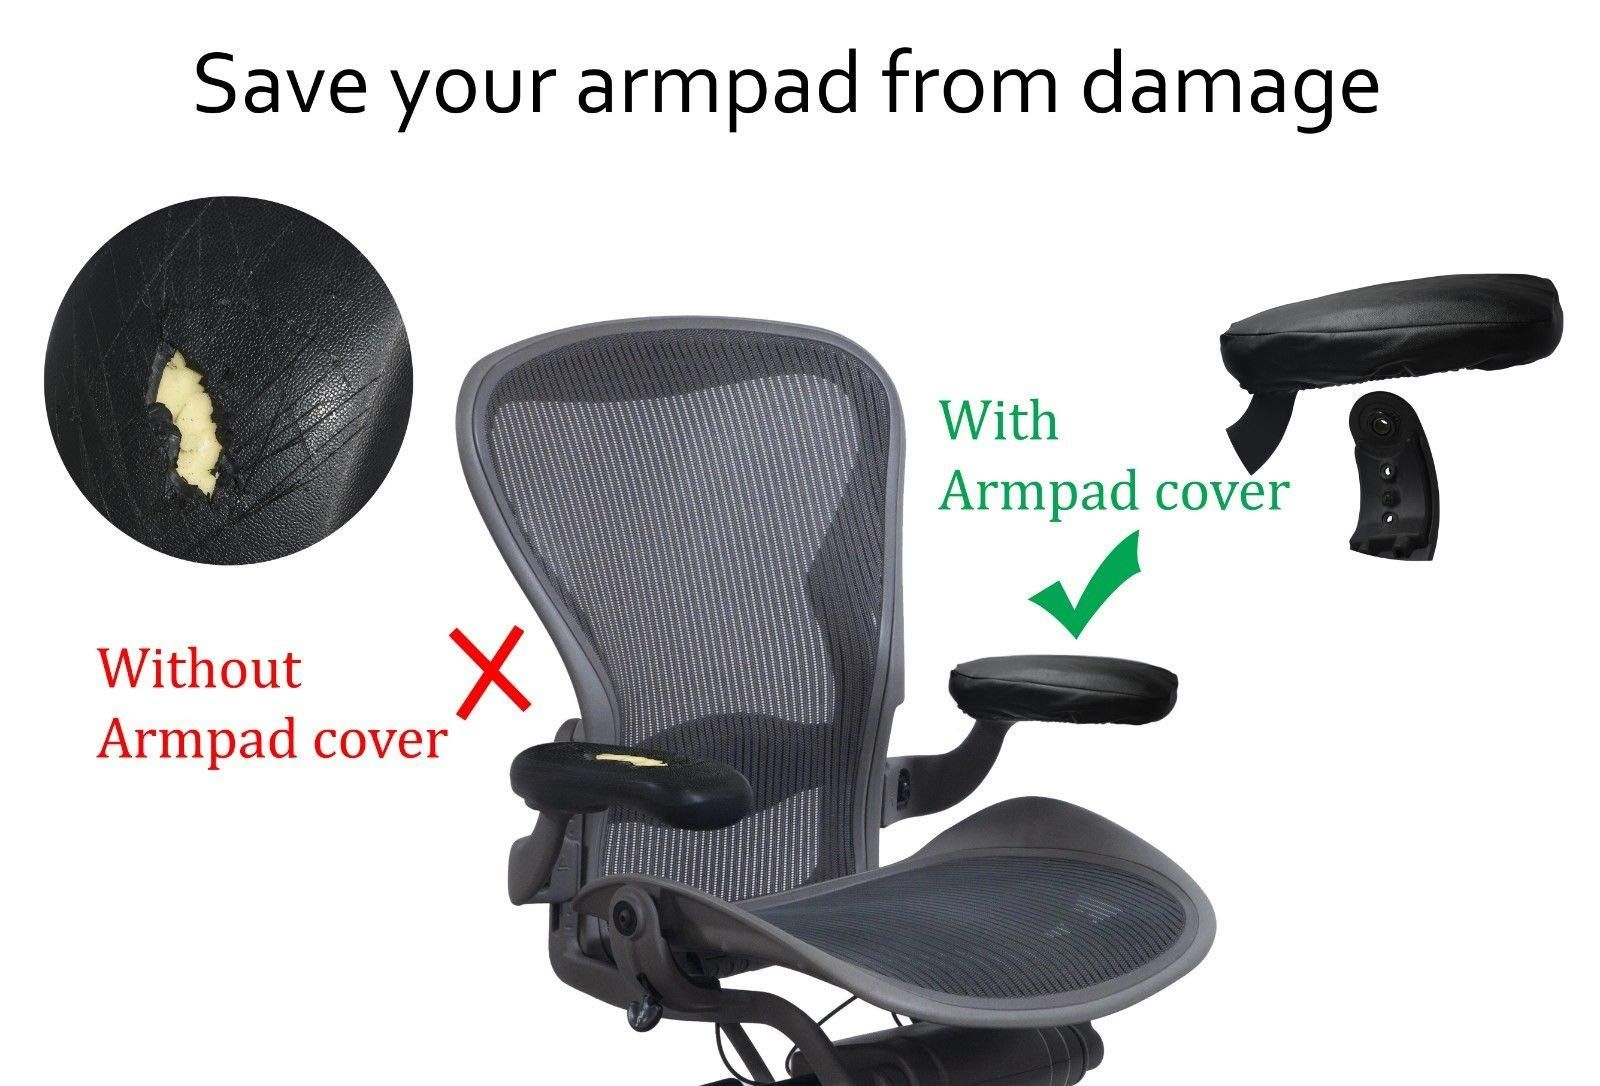 Officelogixshop Leather Arm Pad Cover For Herman Miller Aeron Chair No Need To Replace Damaged Aero Pad Cover Home Office Furniture Herman Miller Aeron Chair